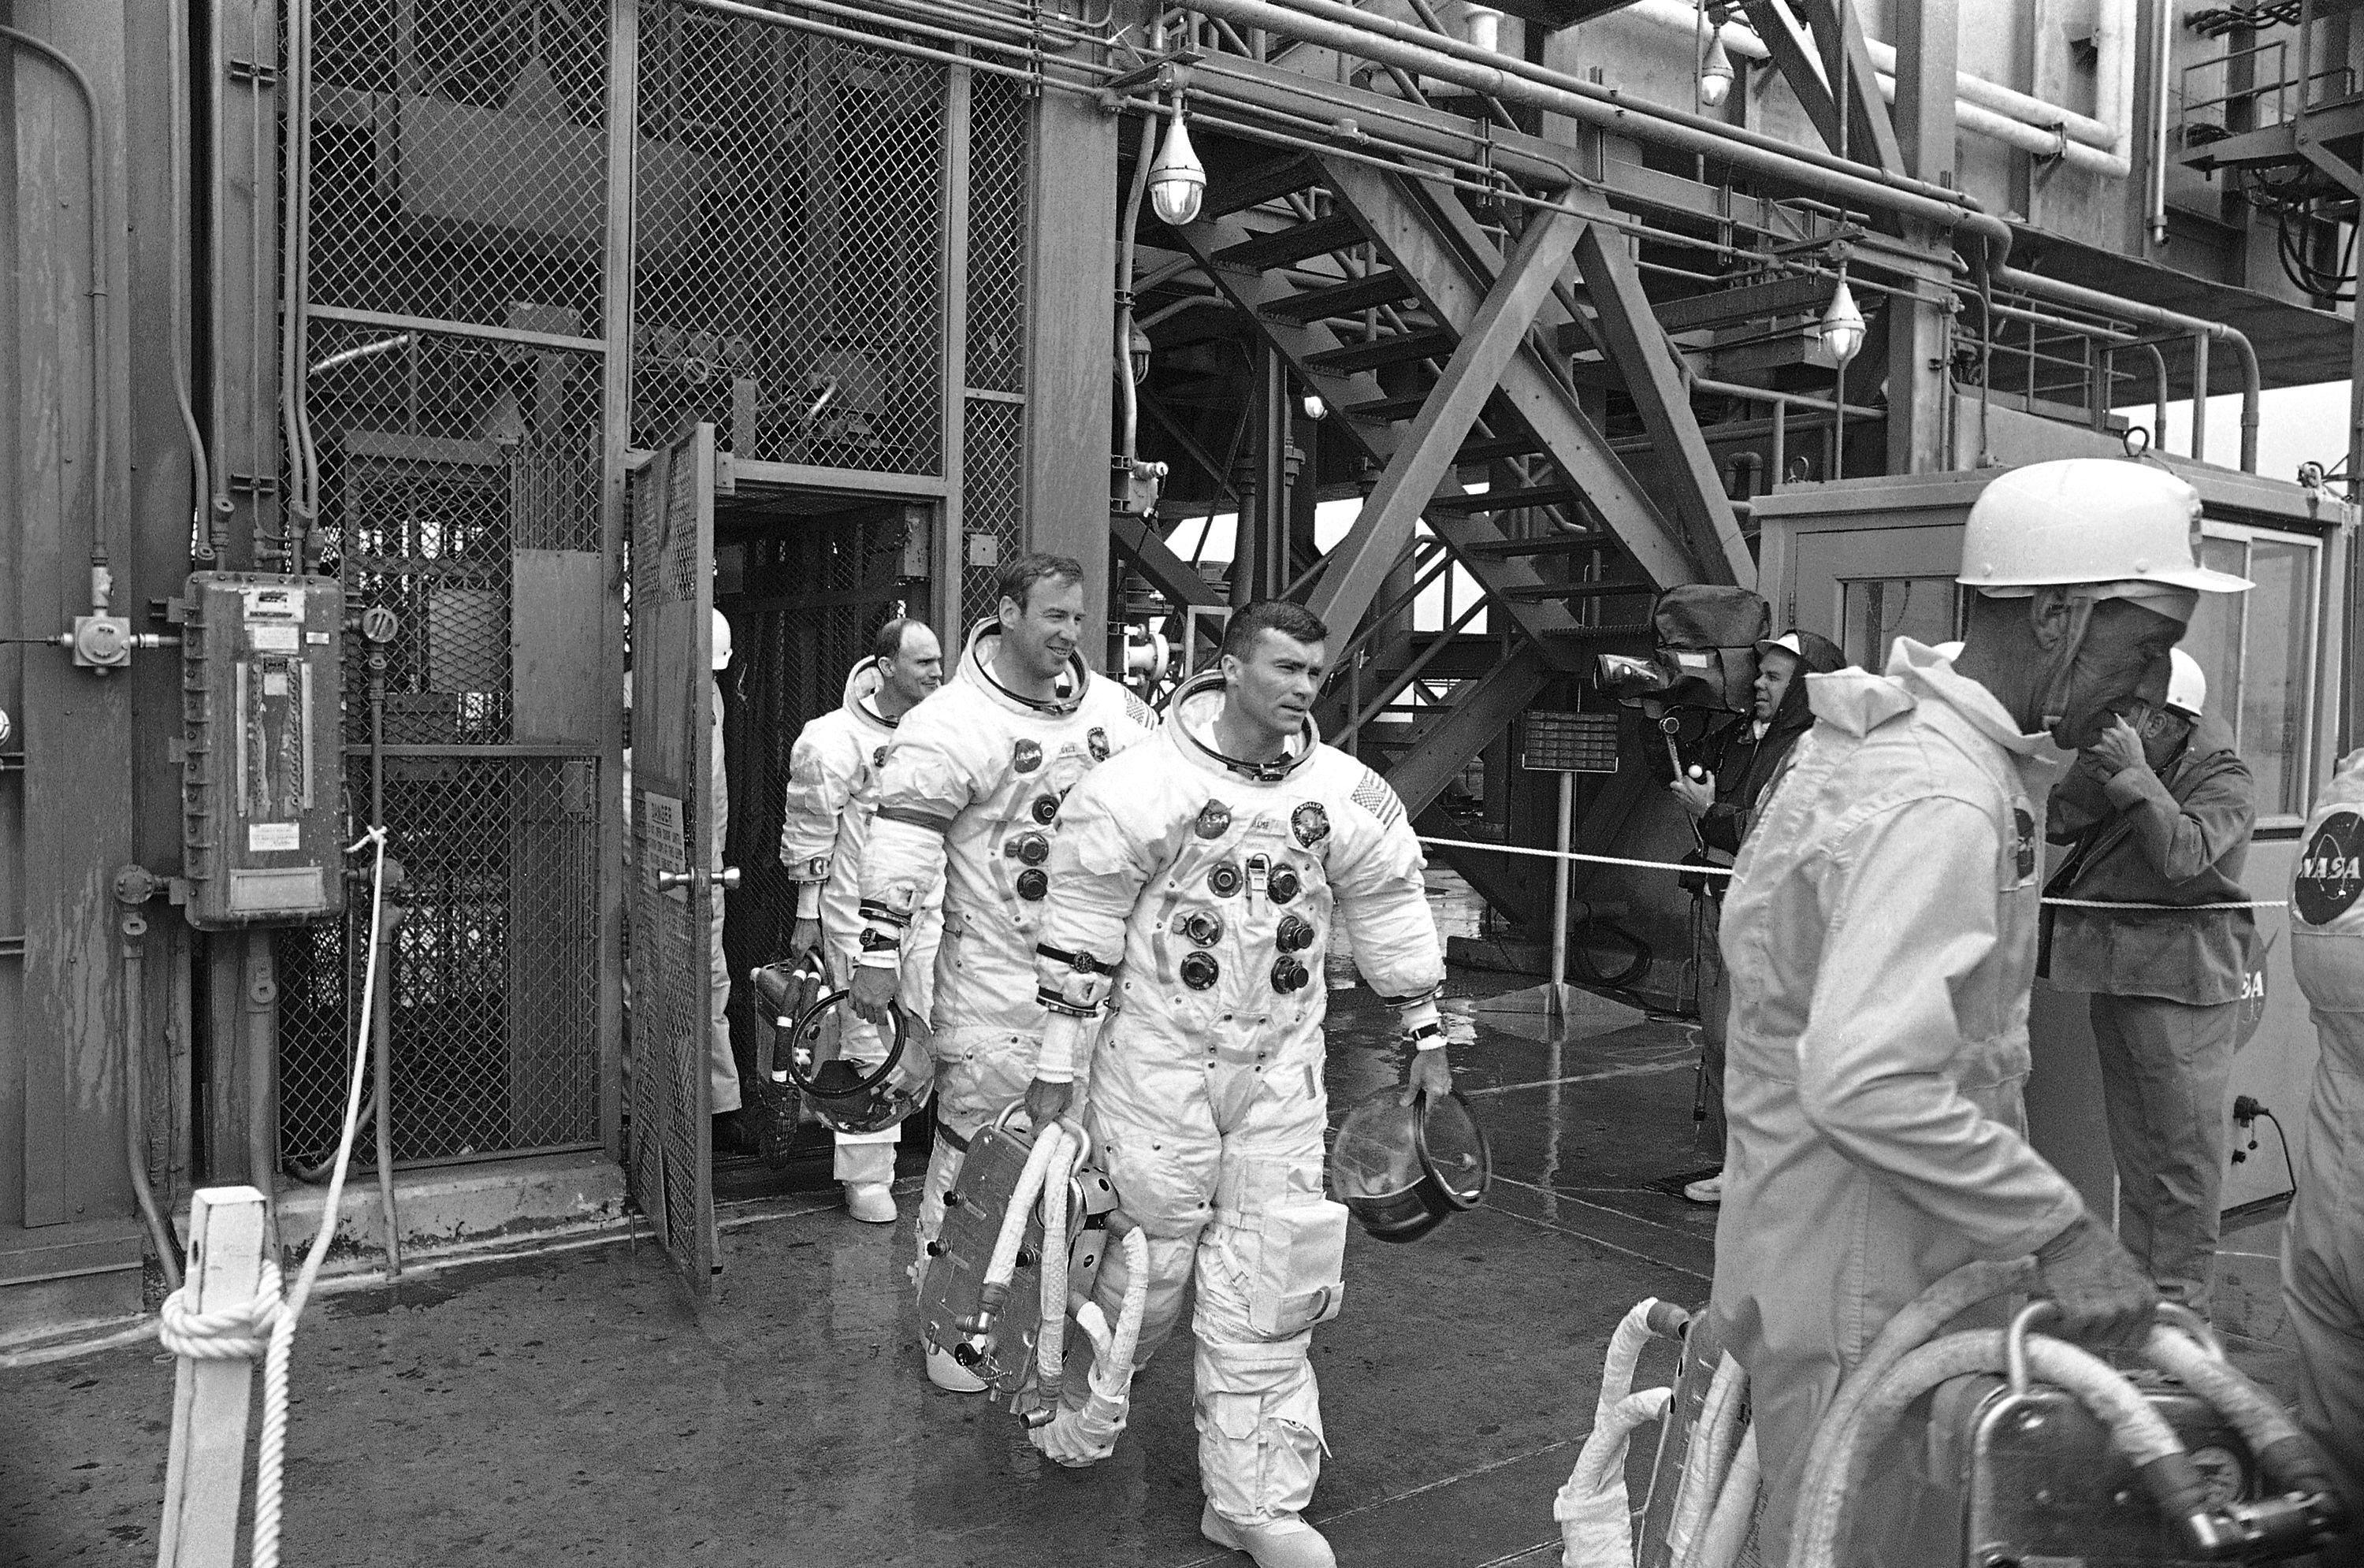 Today in History for April 11: Apollo 13 blasts off